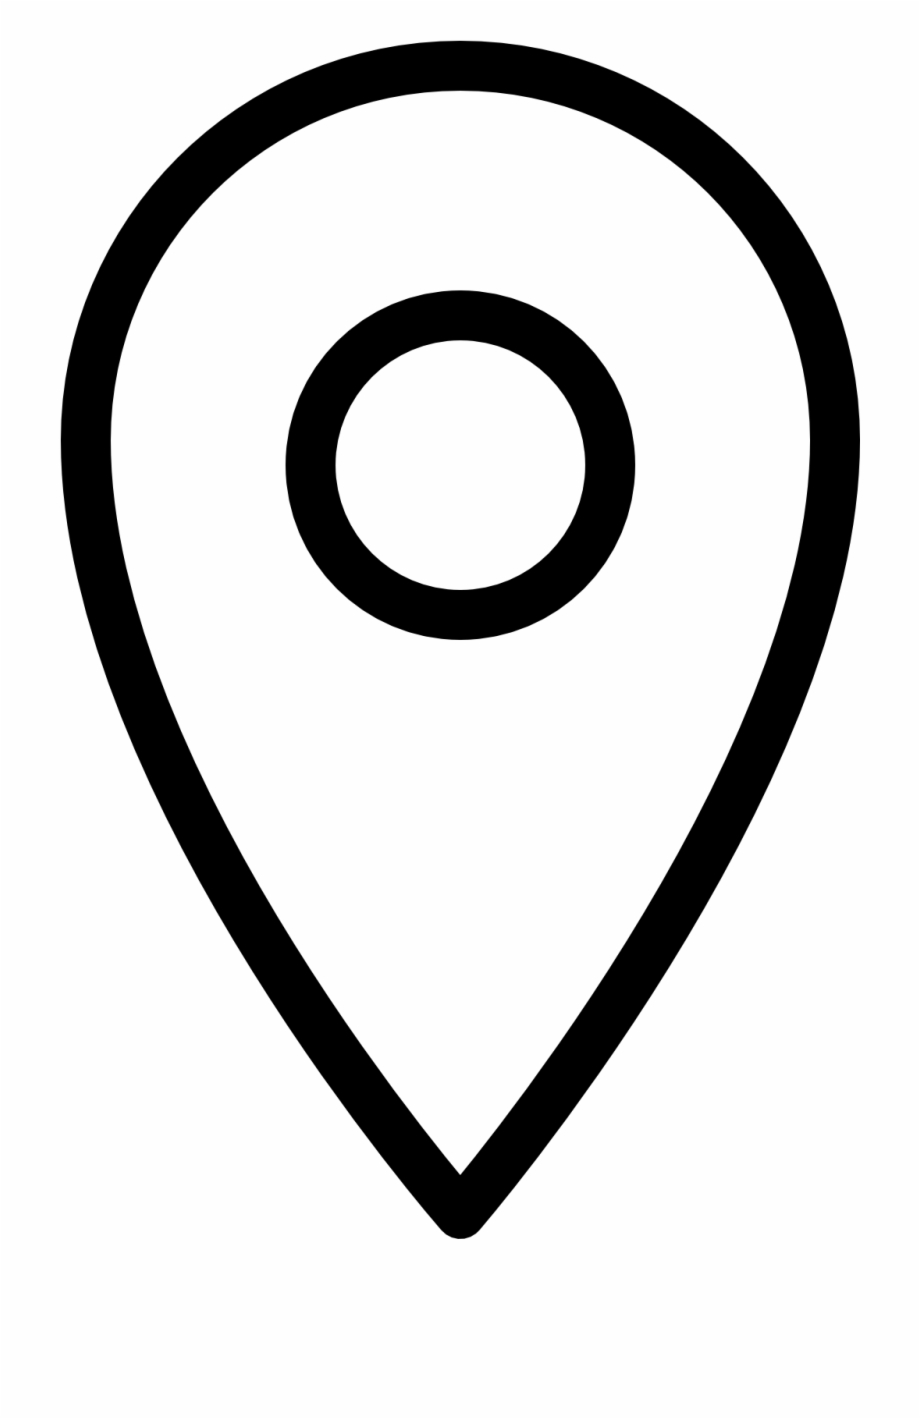 Svg png icon free. Location clipart symbol small